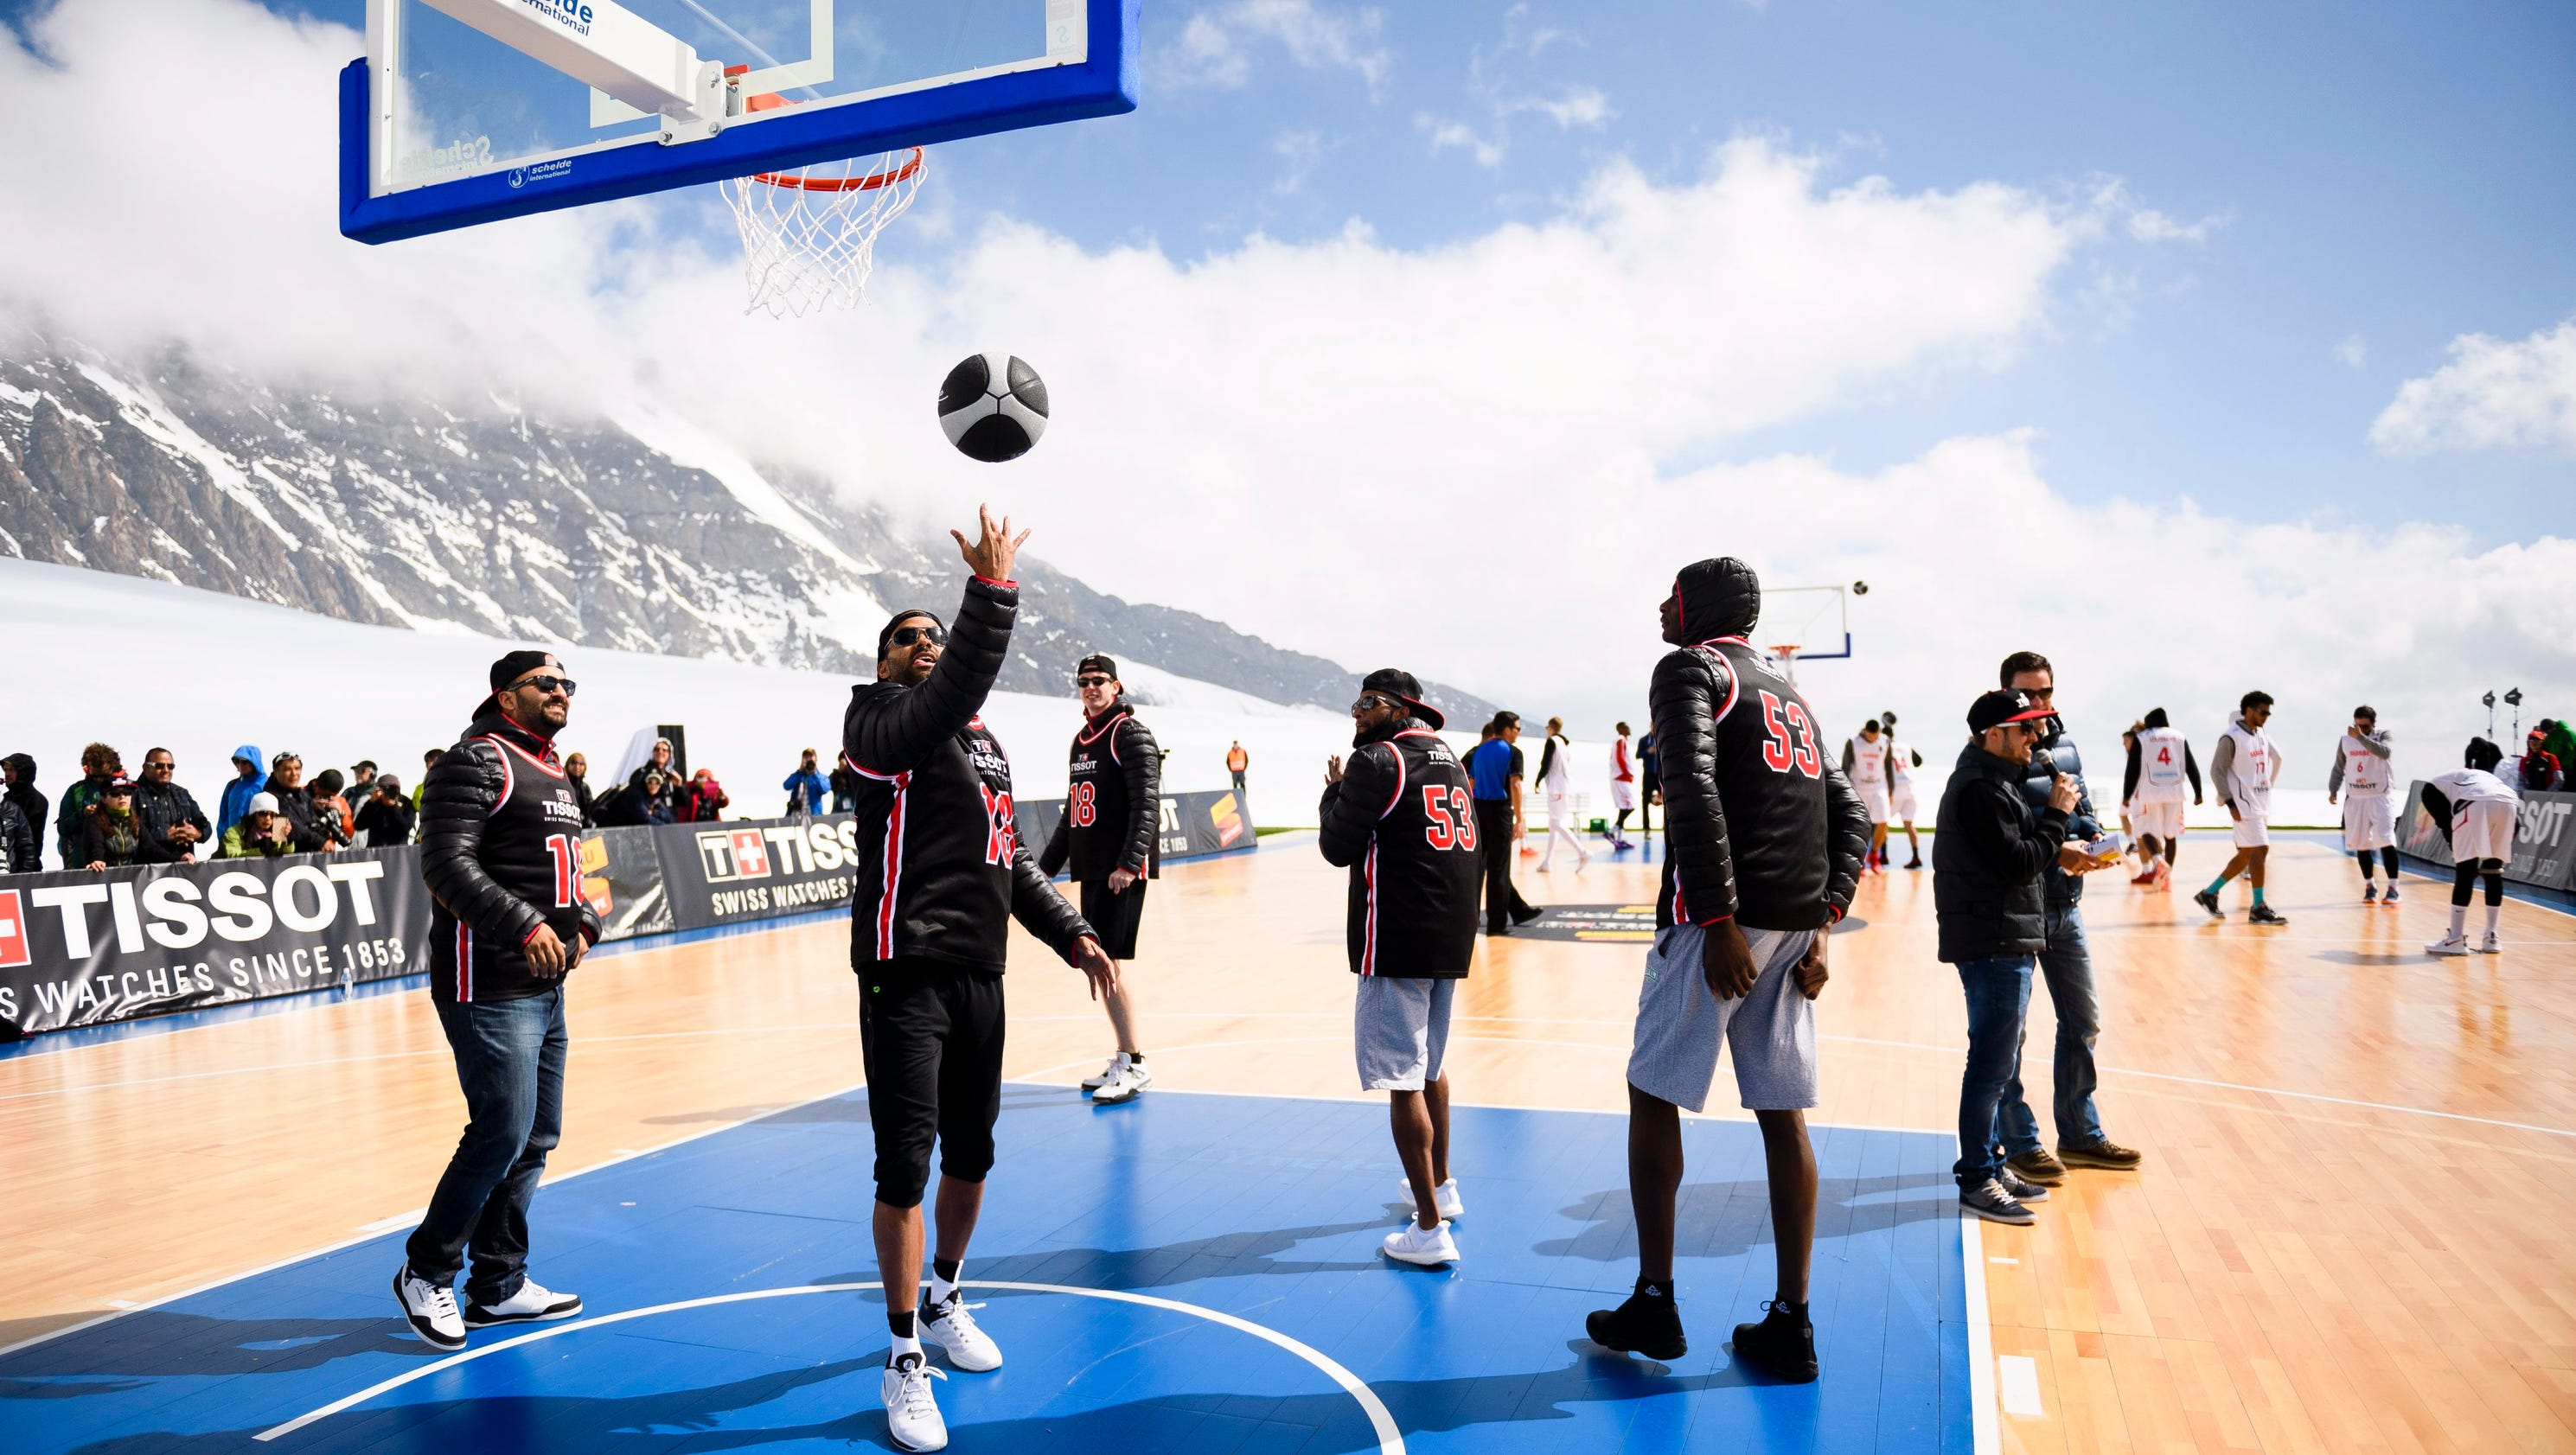 636094622902889206-epa-switzerland-basketball-jungfraujoch-85198926